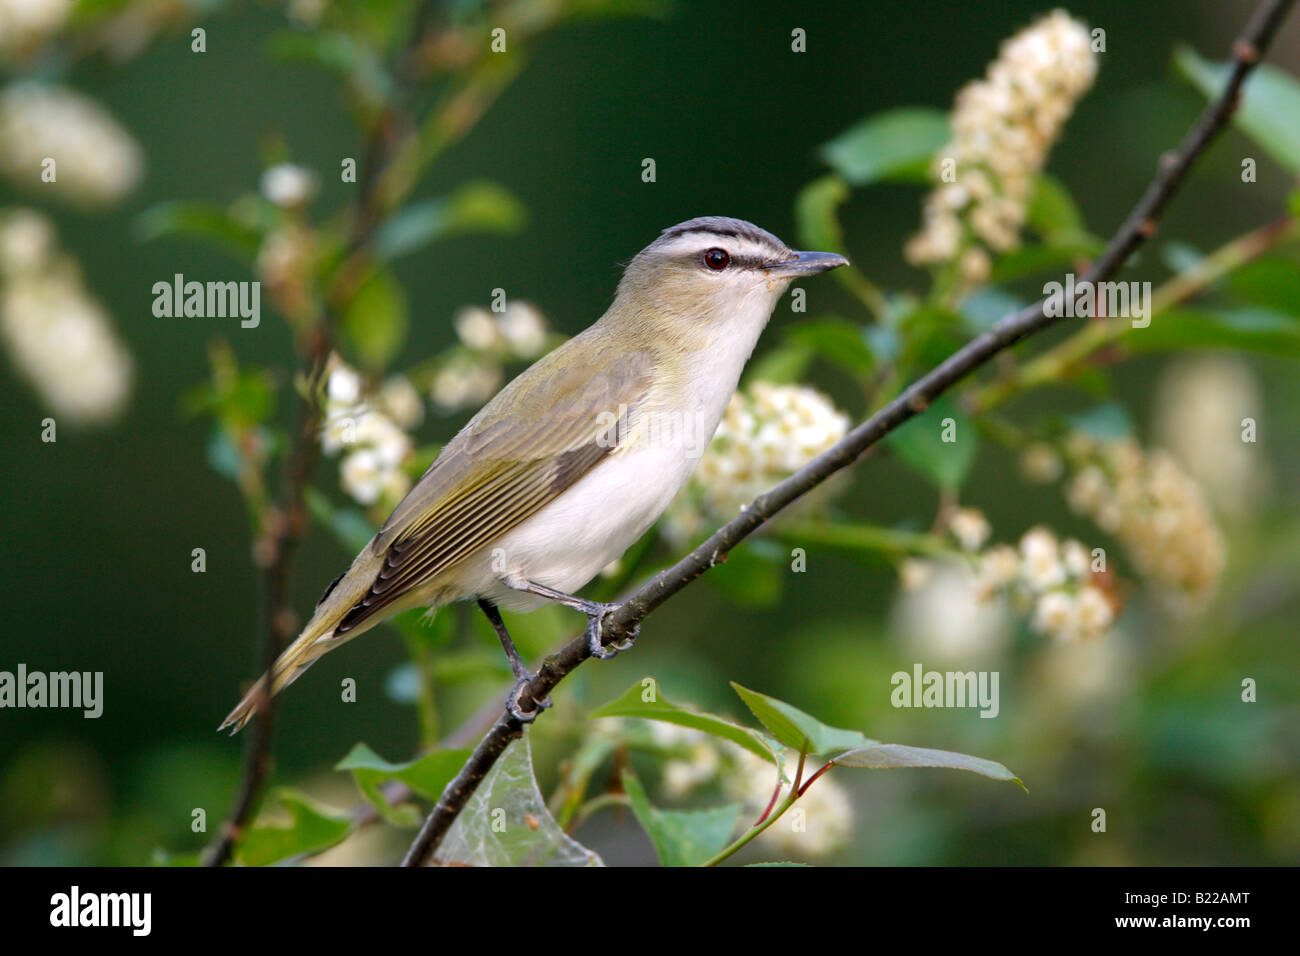 Red eyed Vireo perched in wild black cherry tree with blossoms - Stock Image